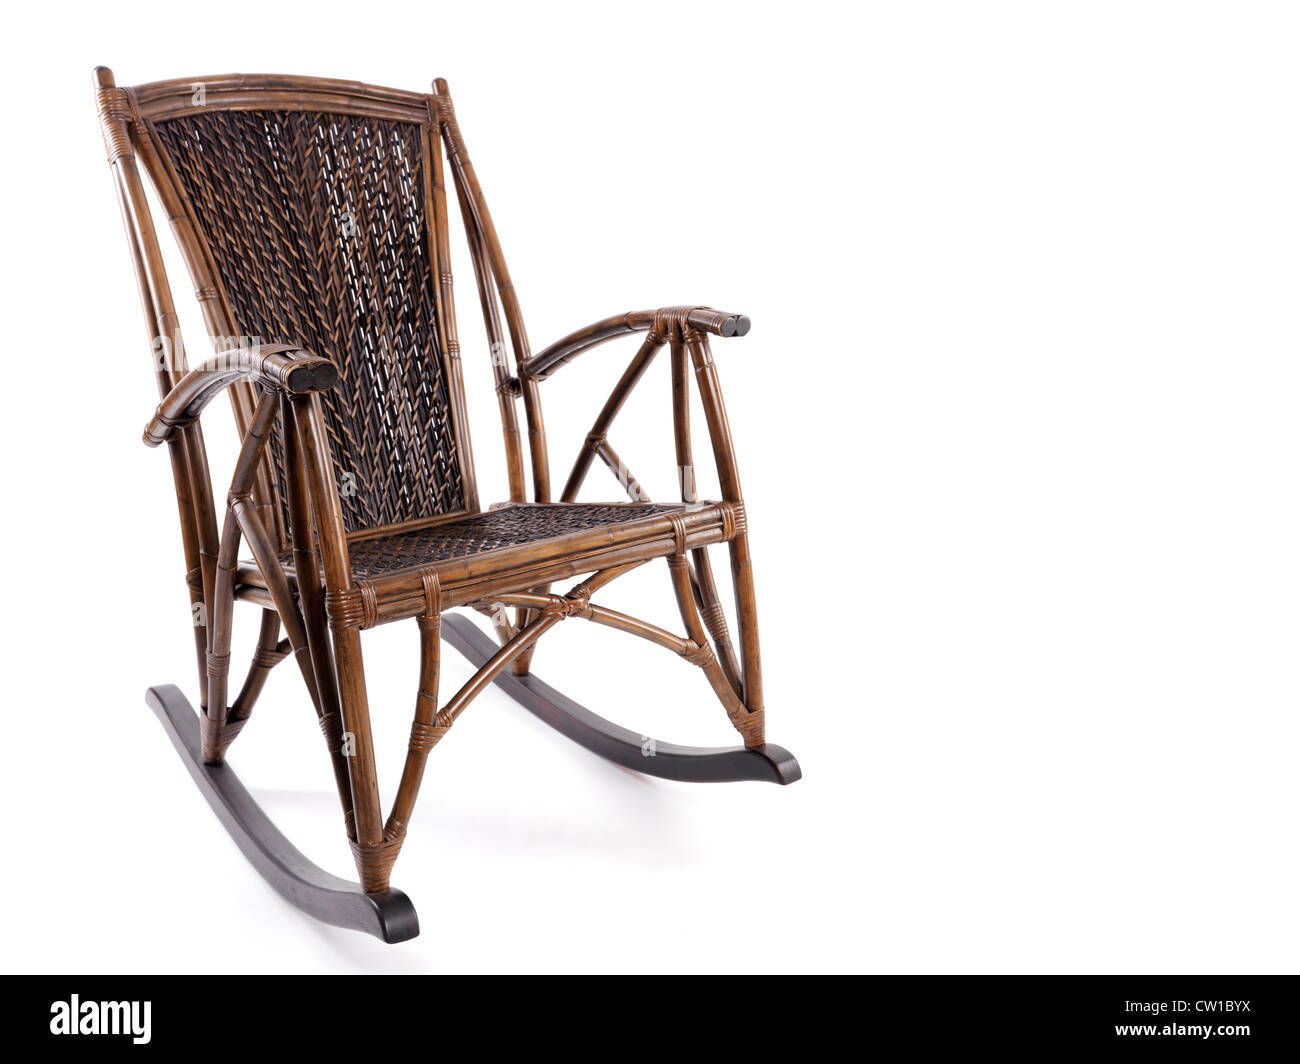 White Wicker Rocking Chair Antique Wooden Wicker Rocking Chair Isolated On White